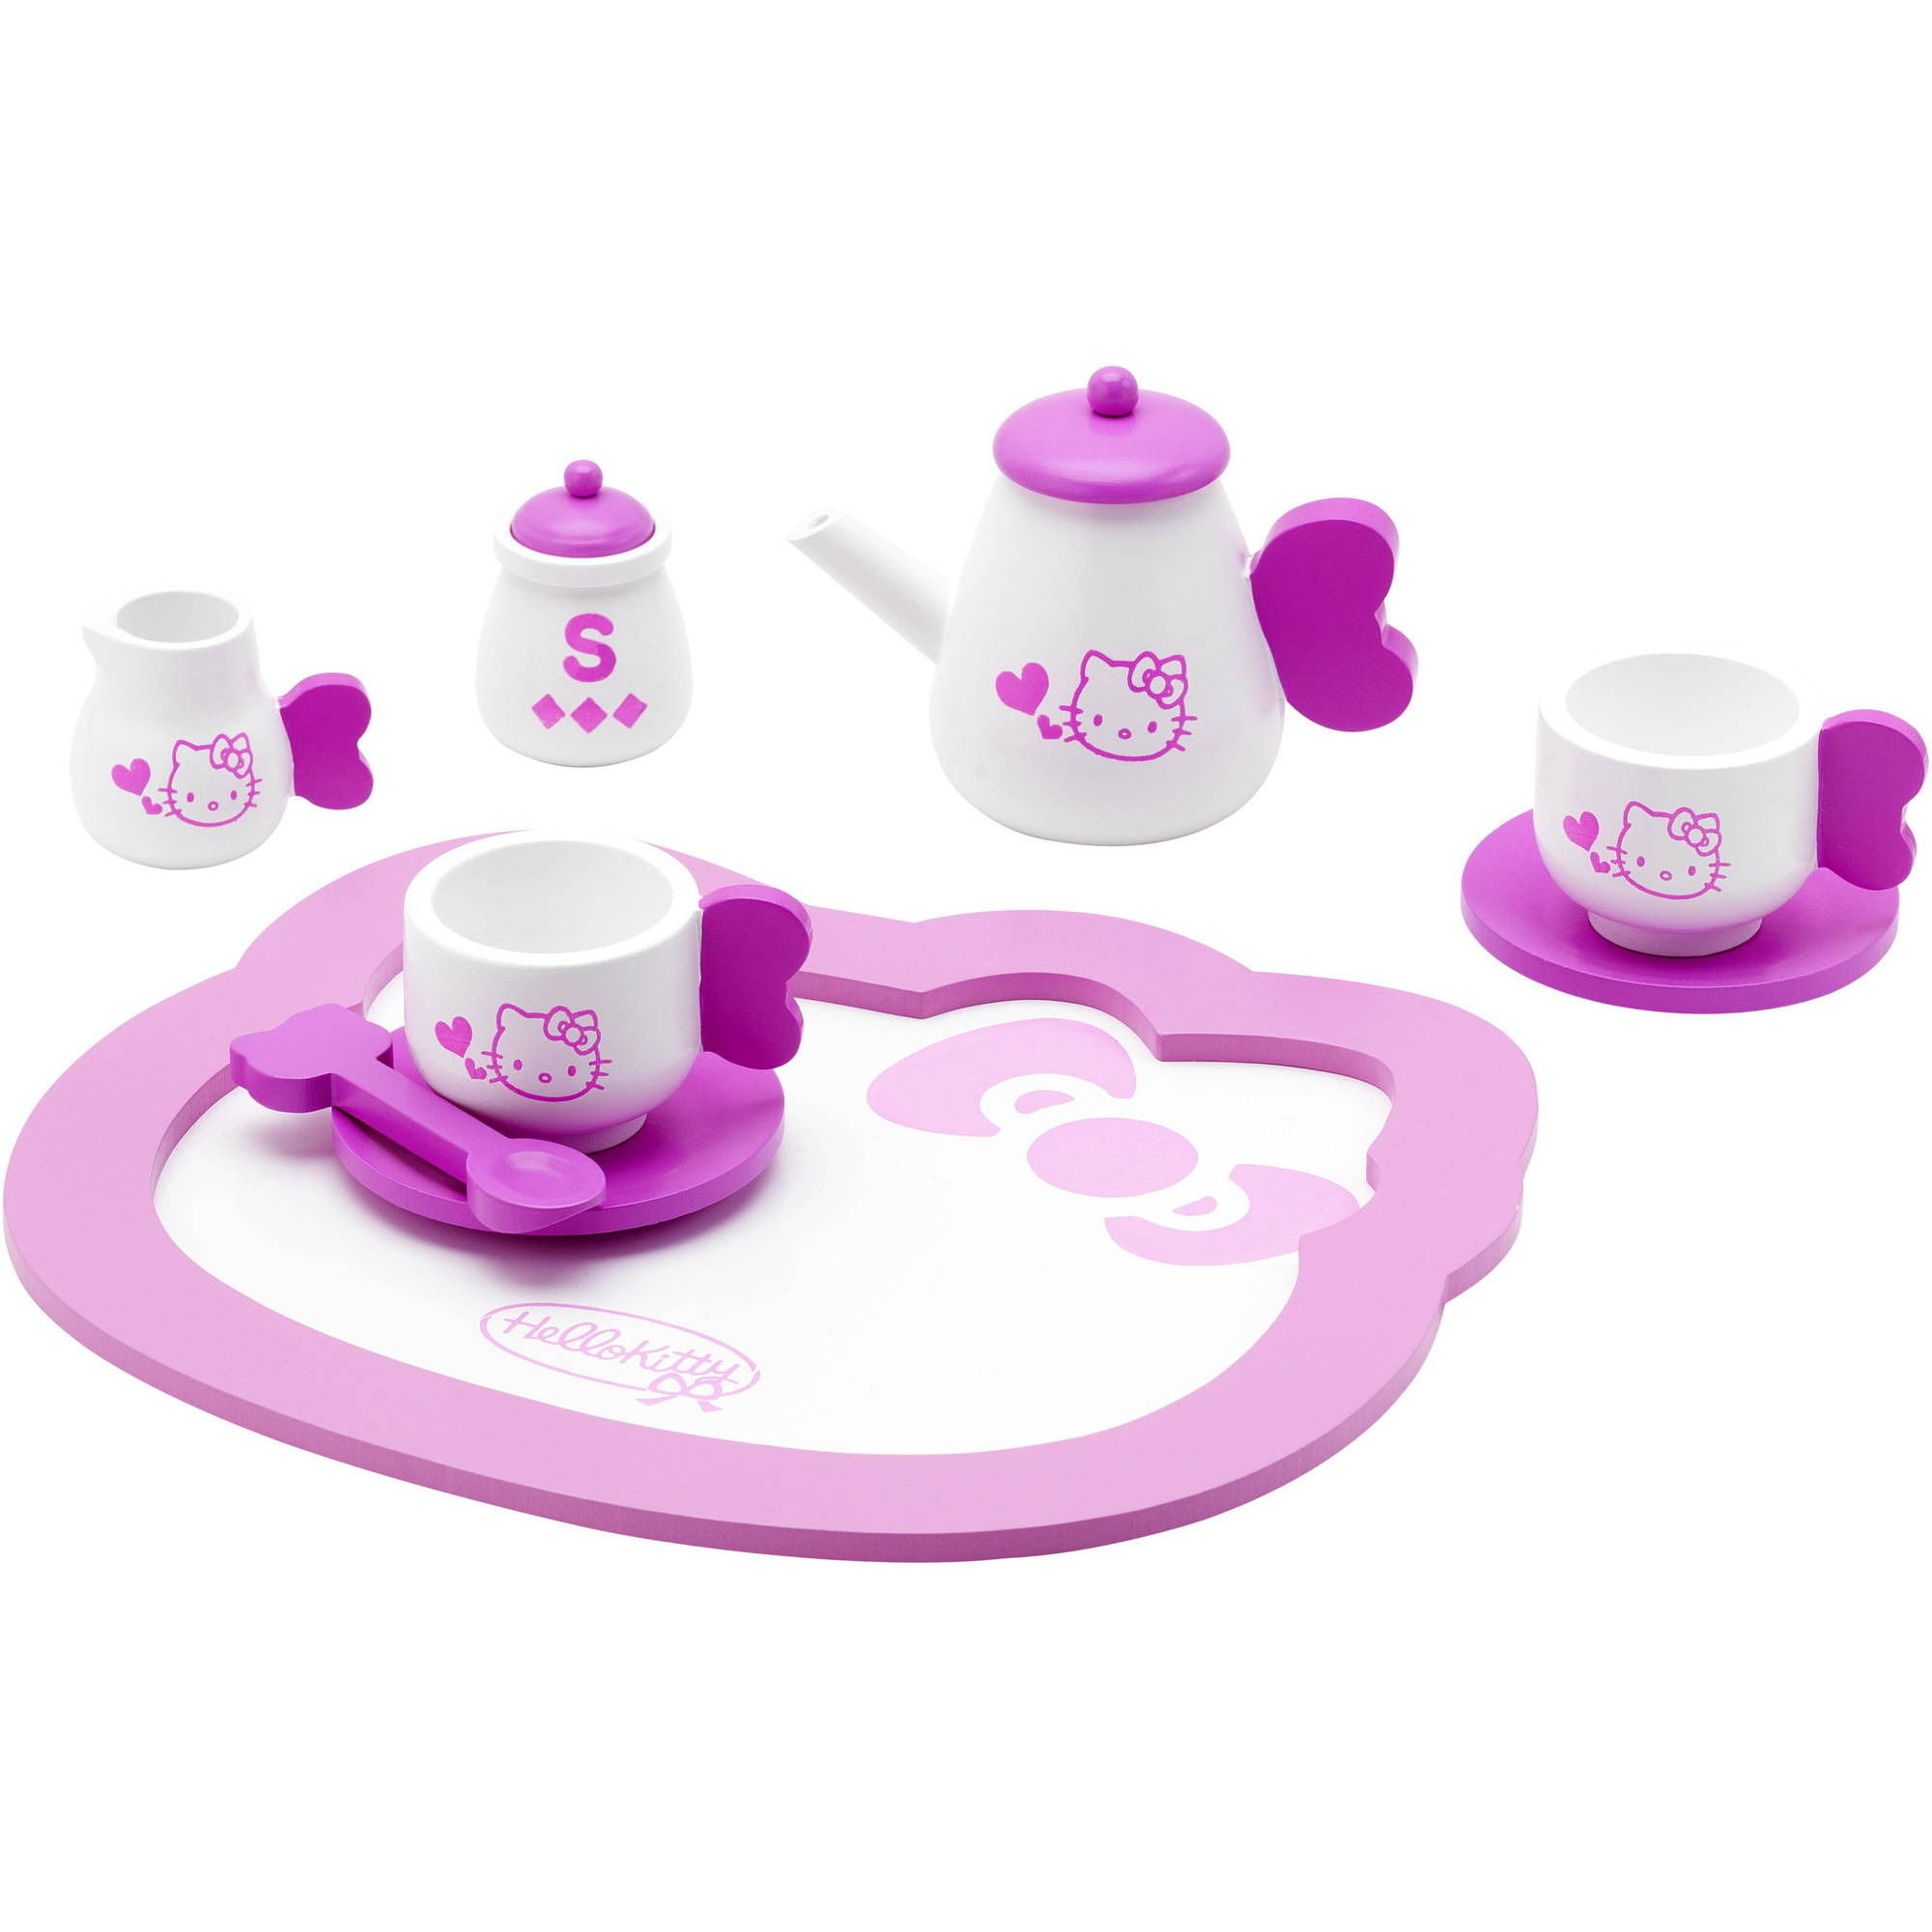 Hello Kitty Tea Set by Generic